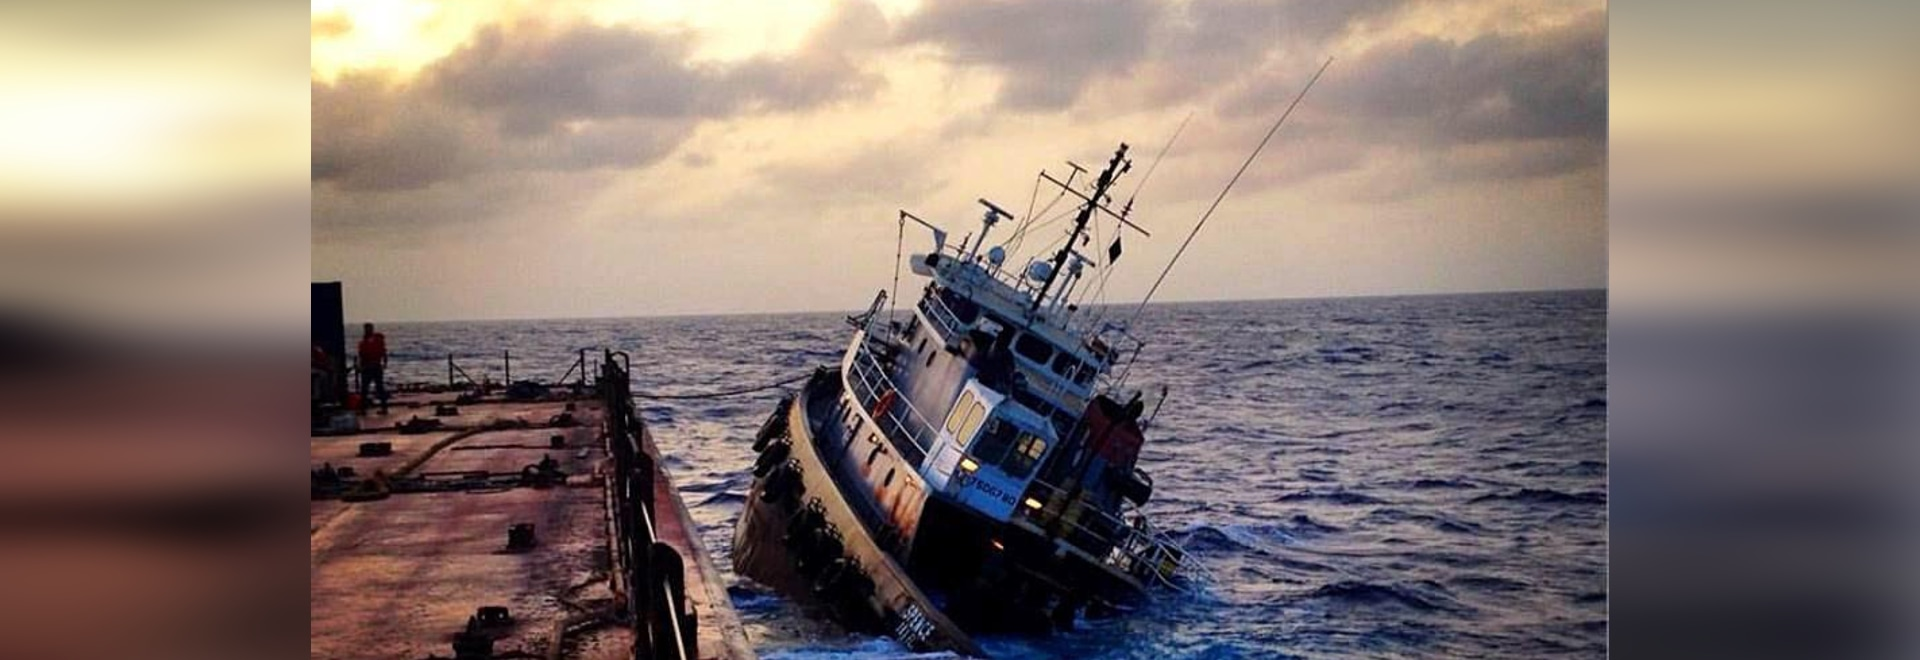 Spence shortly before sinking, after crewmembers had abandoned ship to barge Guantanamo Bay Express. (Photo by Spence crewmember provided by Coast Guard)